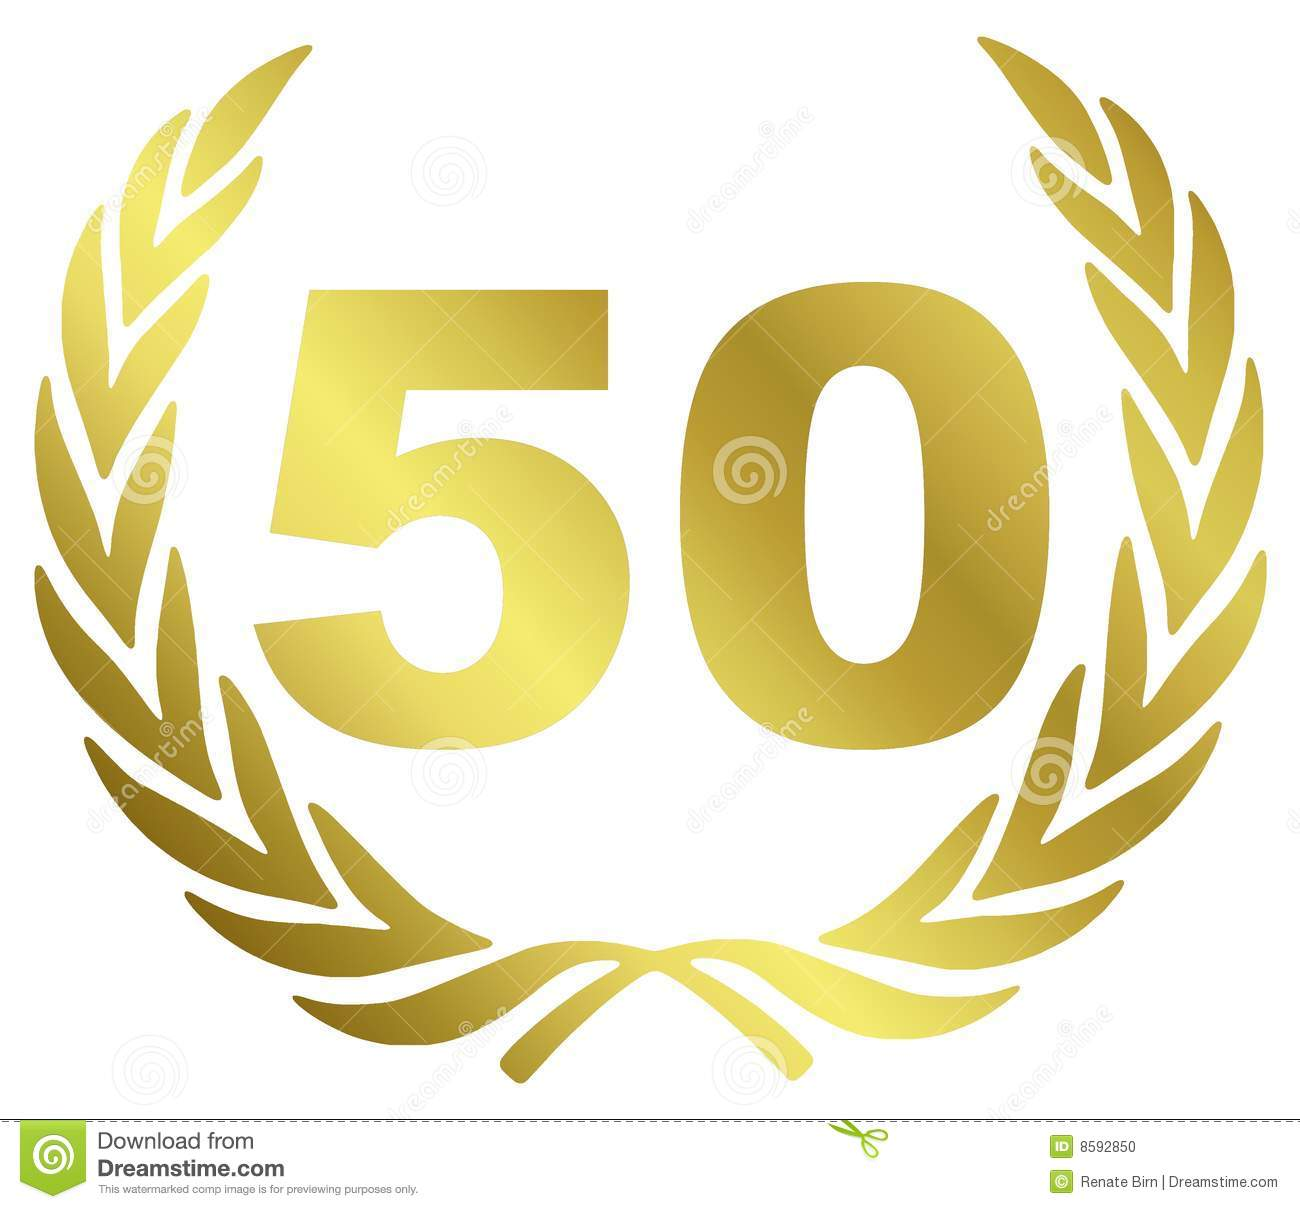 50 Anniversary Illustration With Laurel Wreath